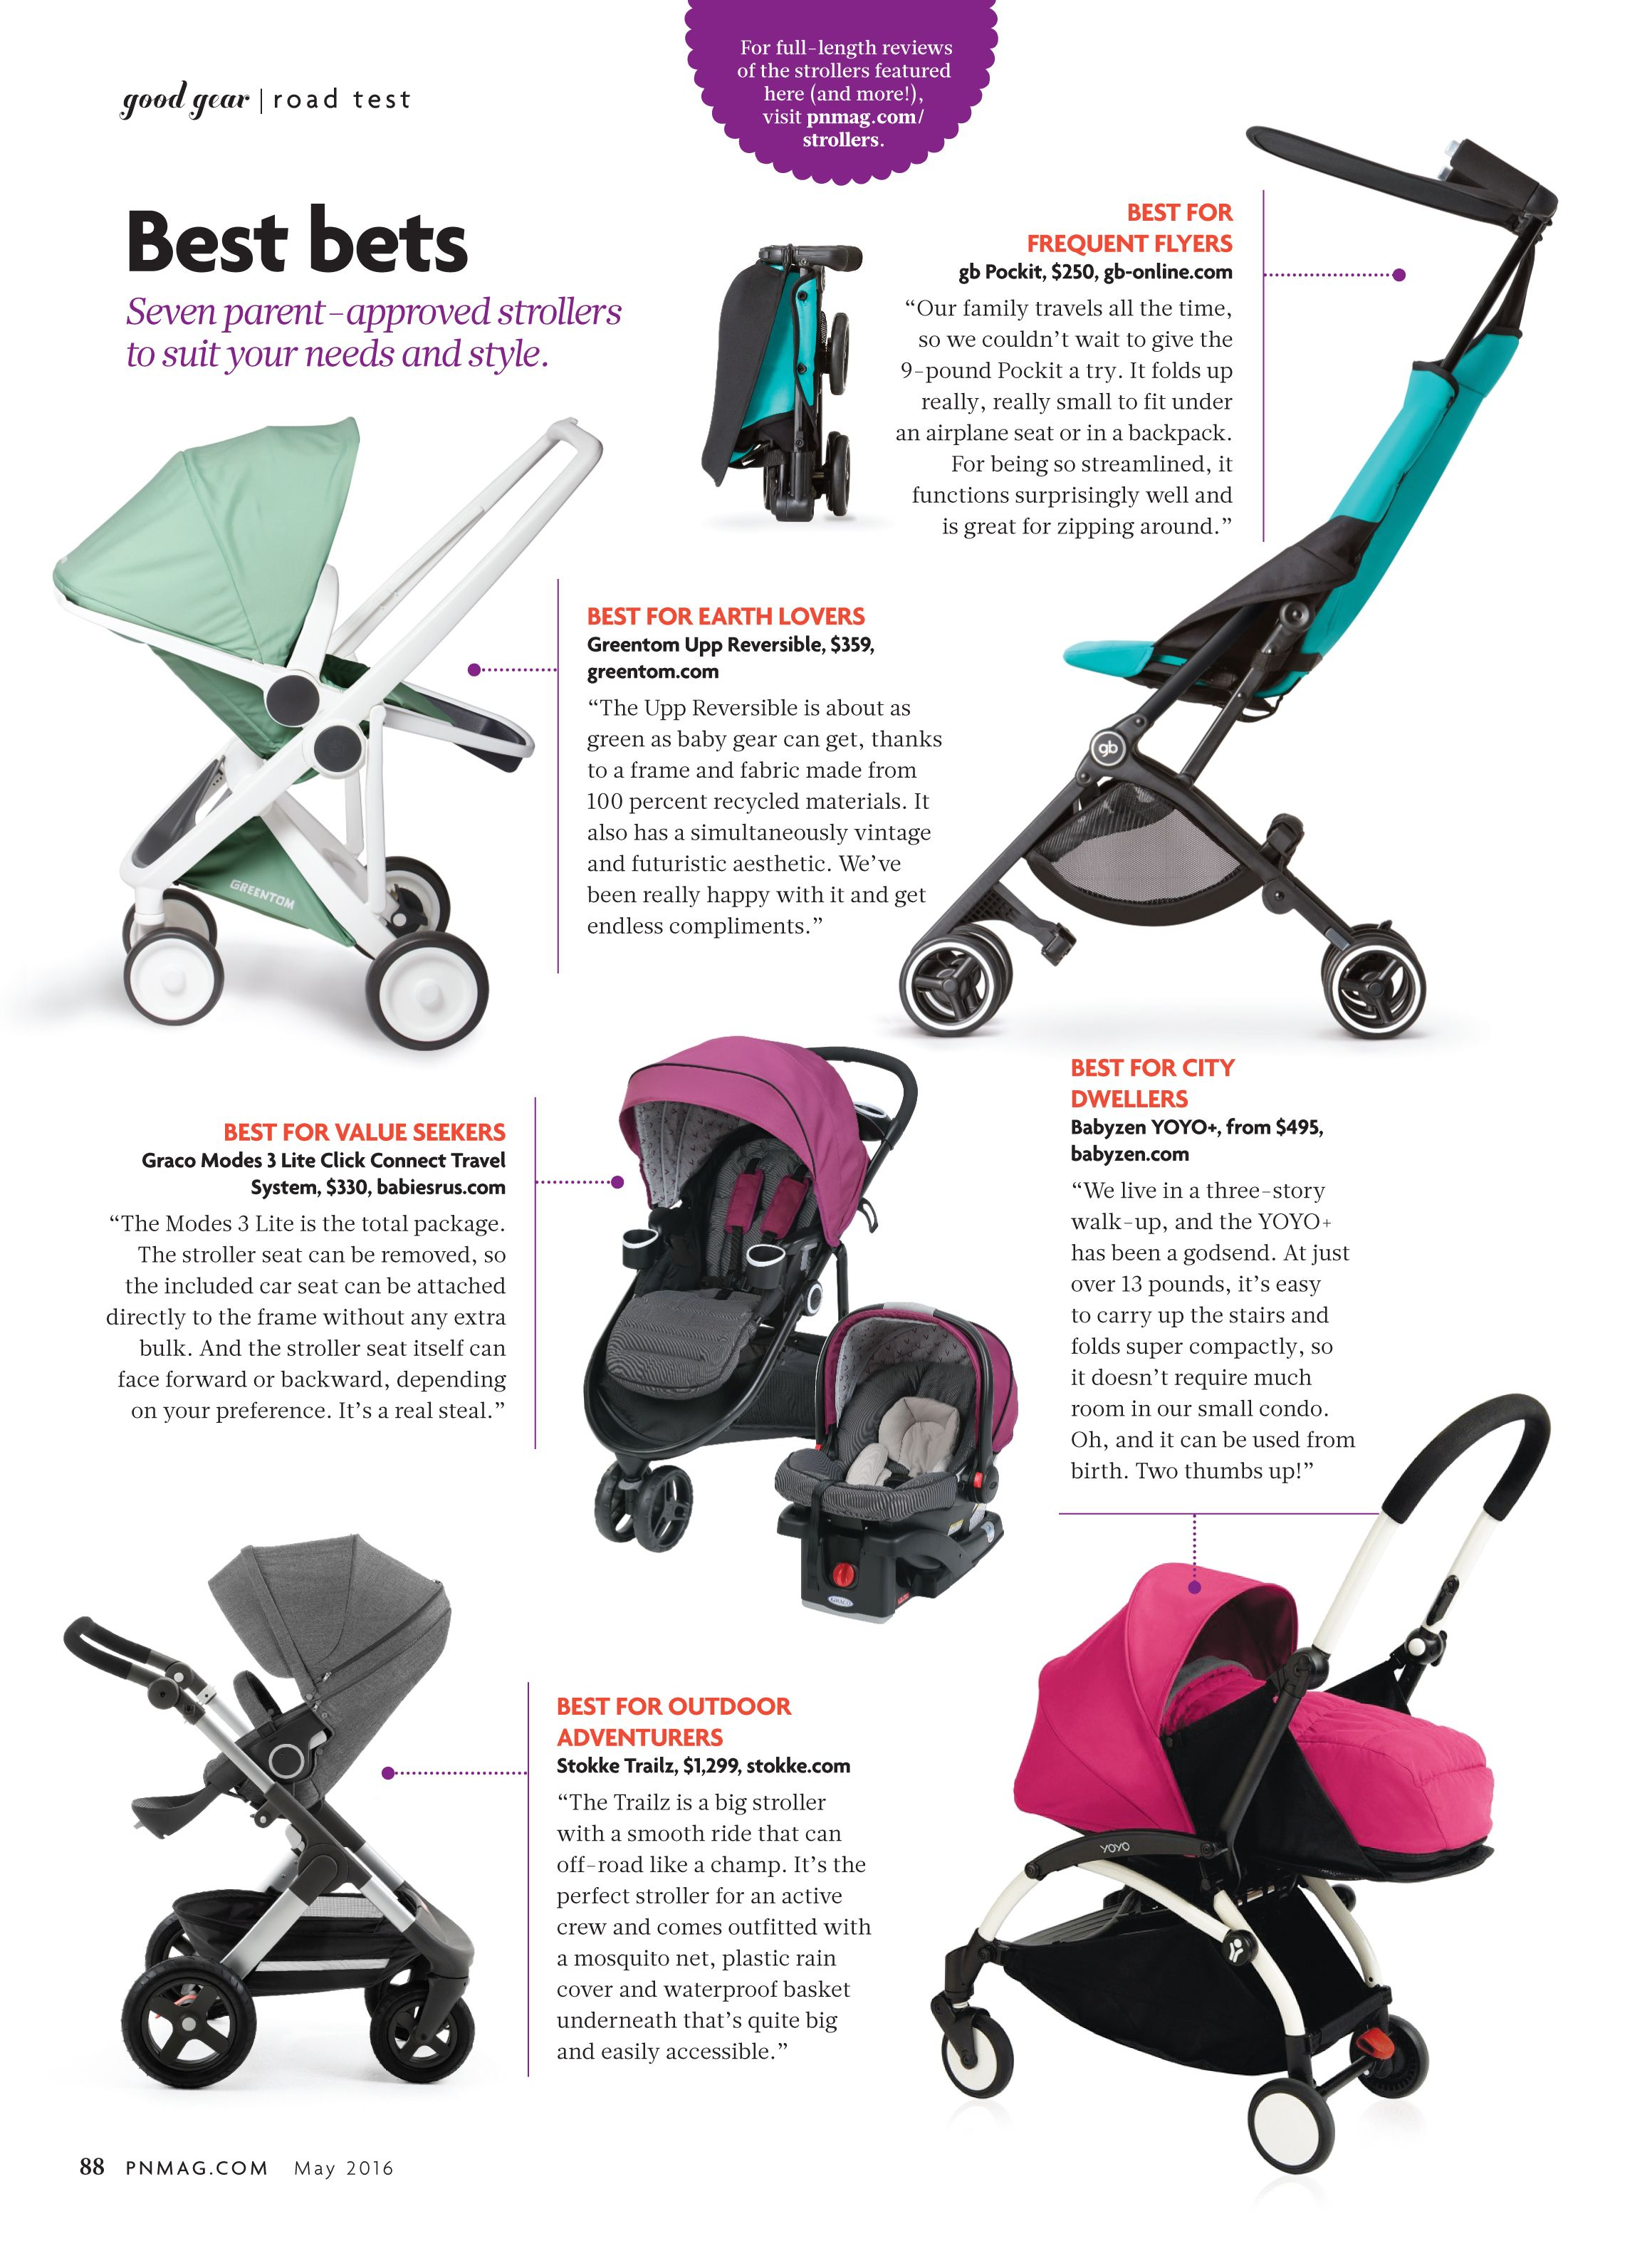 Stokke Trailz Stroller Featured In Pregnancy Newborn Magazine Baby Klapvogne Barselsgaver Gear